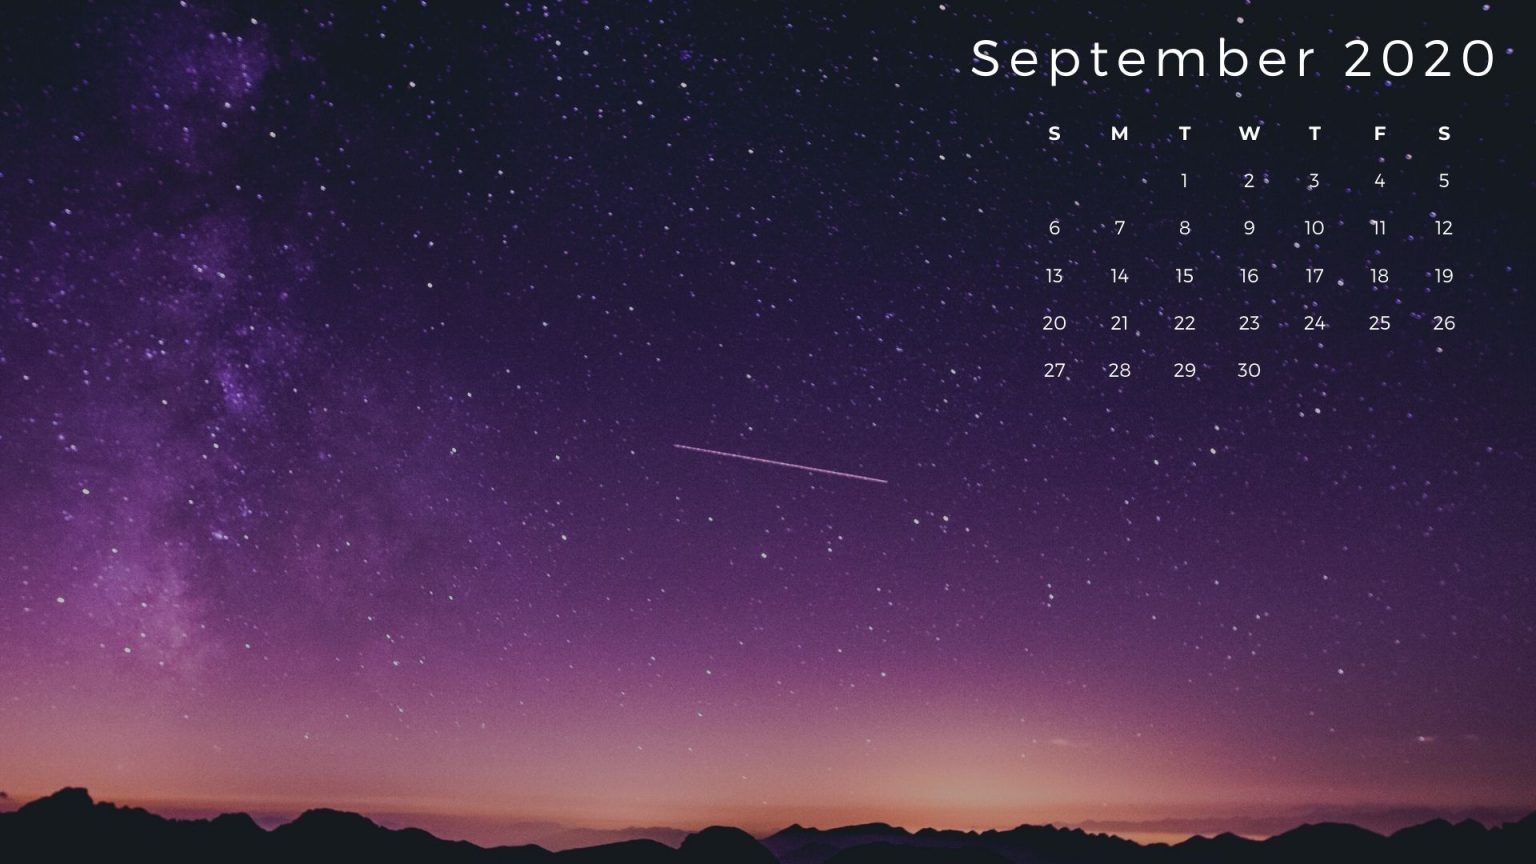 September 2020 Calendar HD Wallpaper